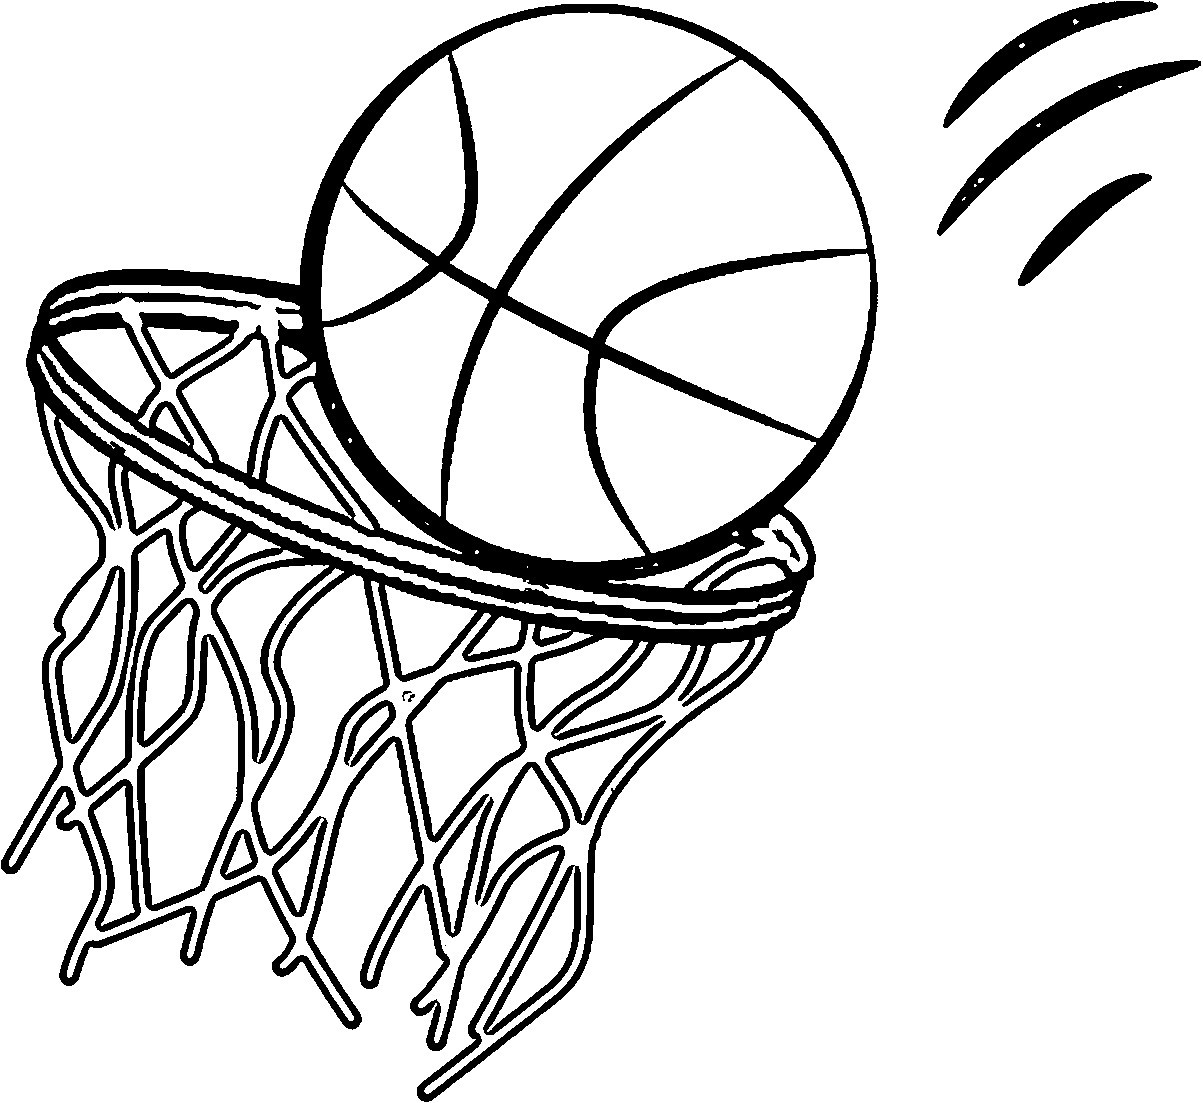 1203x1103 Free Printable Coloring Pages Of Basketball Players Copy